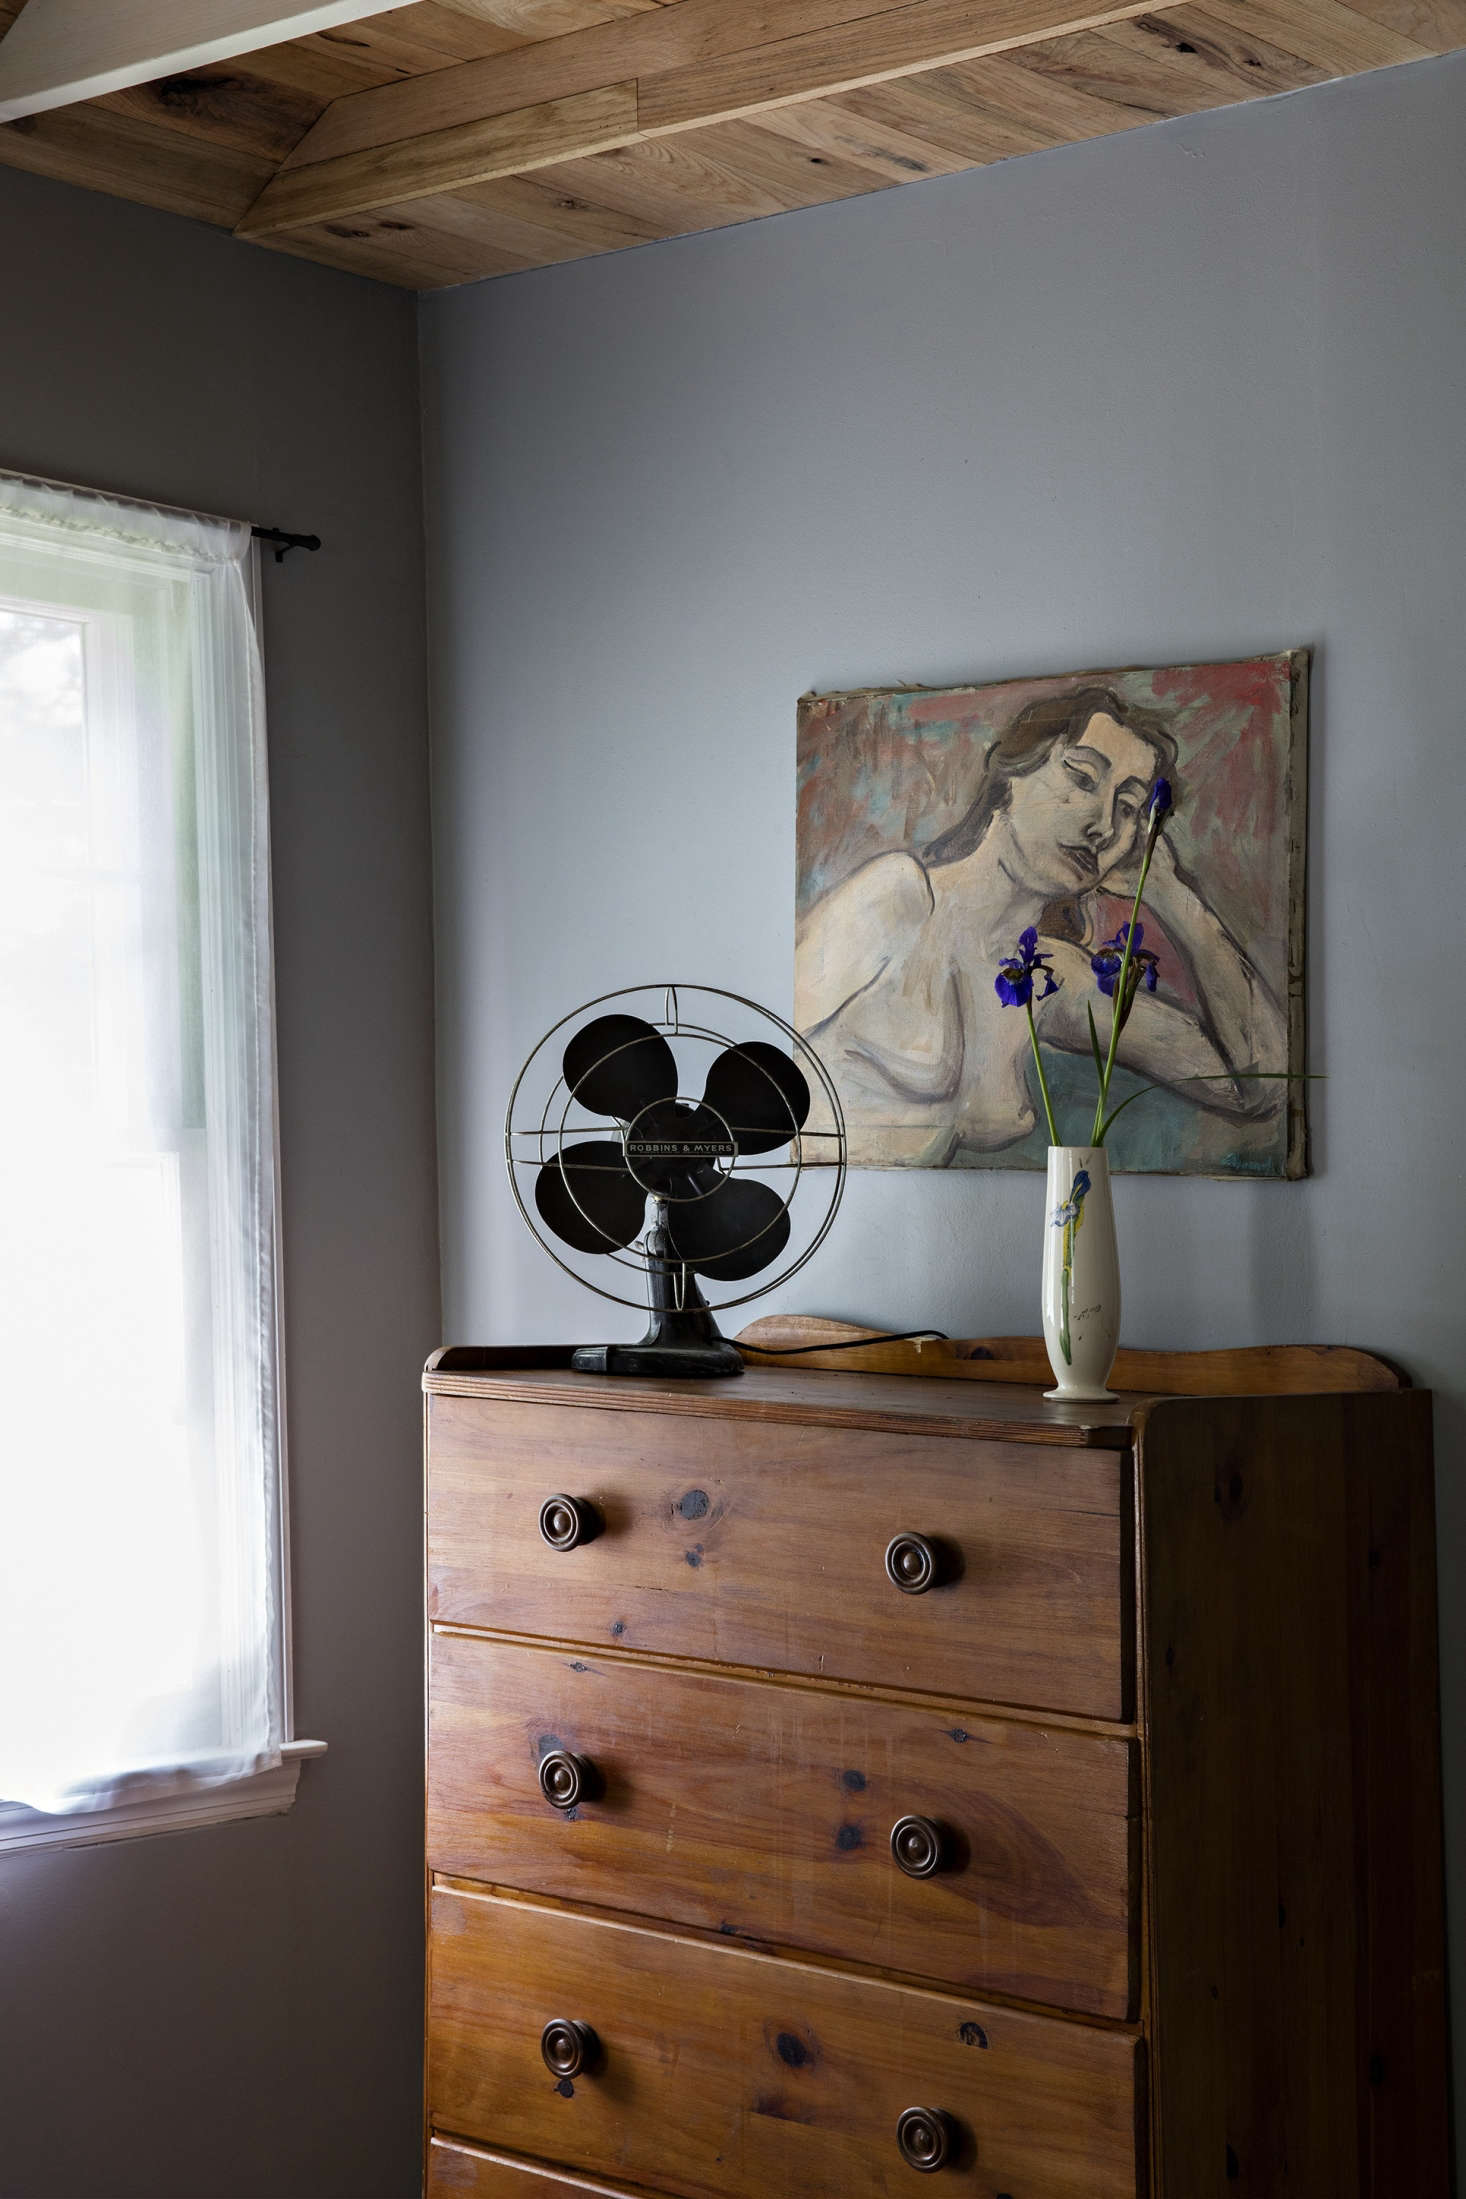 Vintage fans sit atop dressers in the bungalow bedrooms.